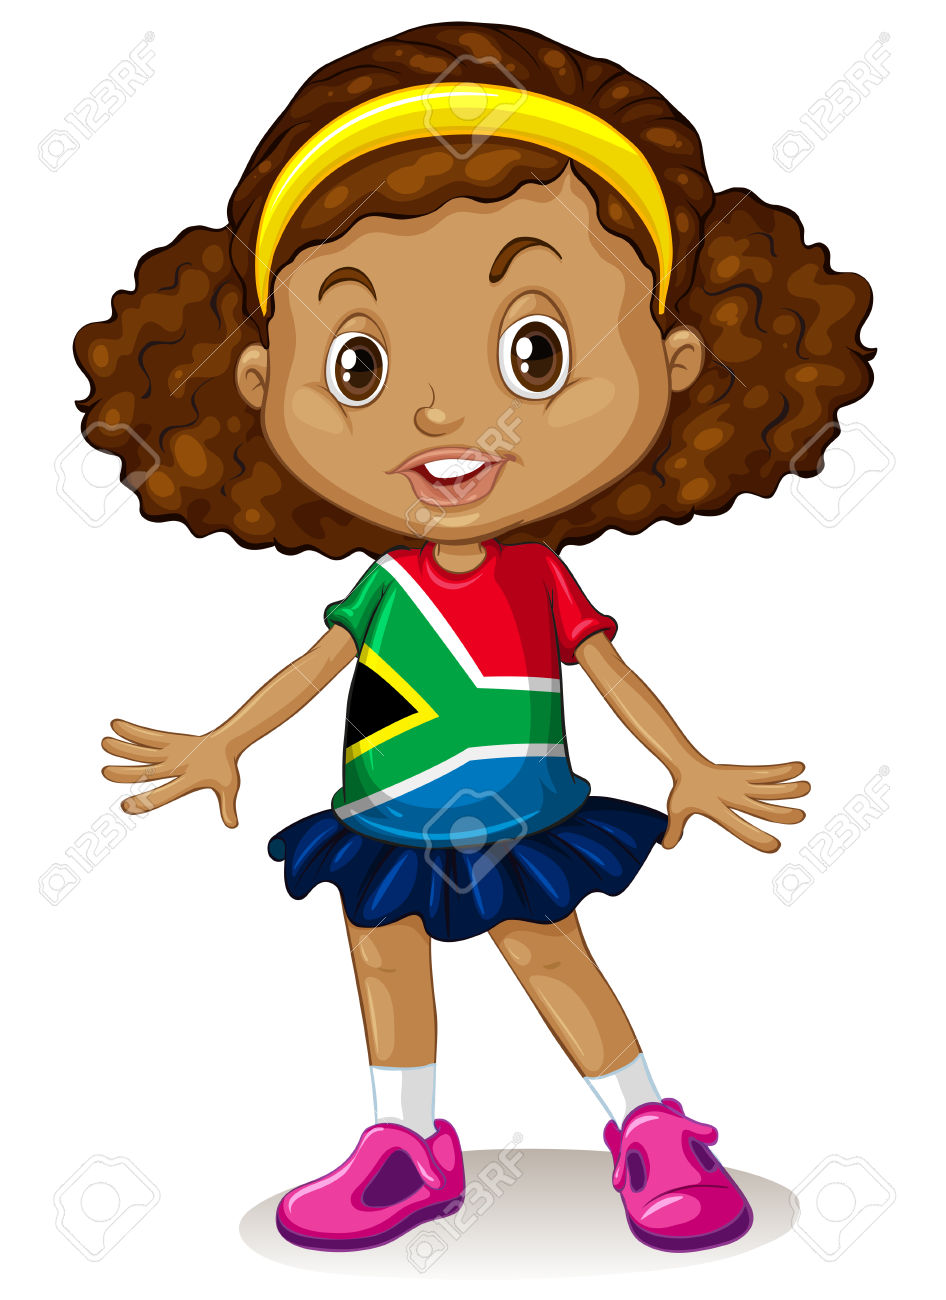 Girl Standing Alone Clipart.